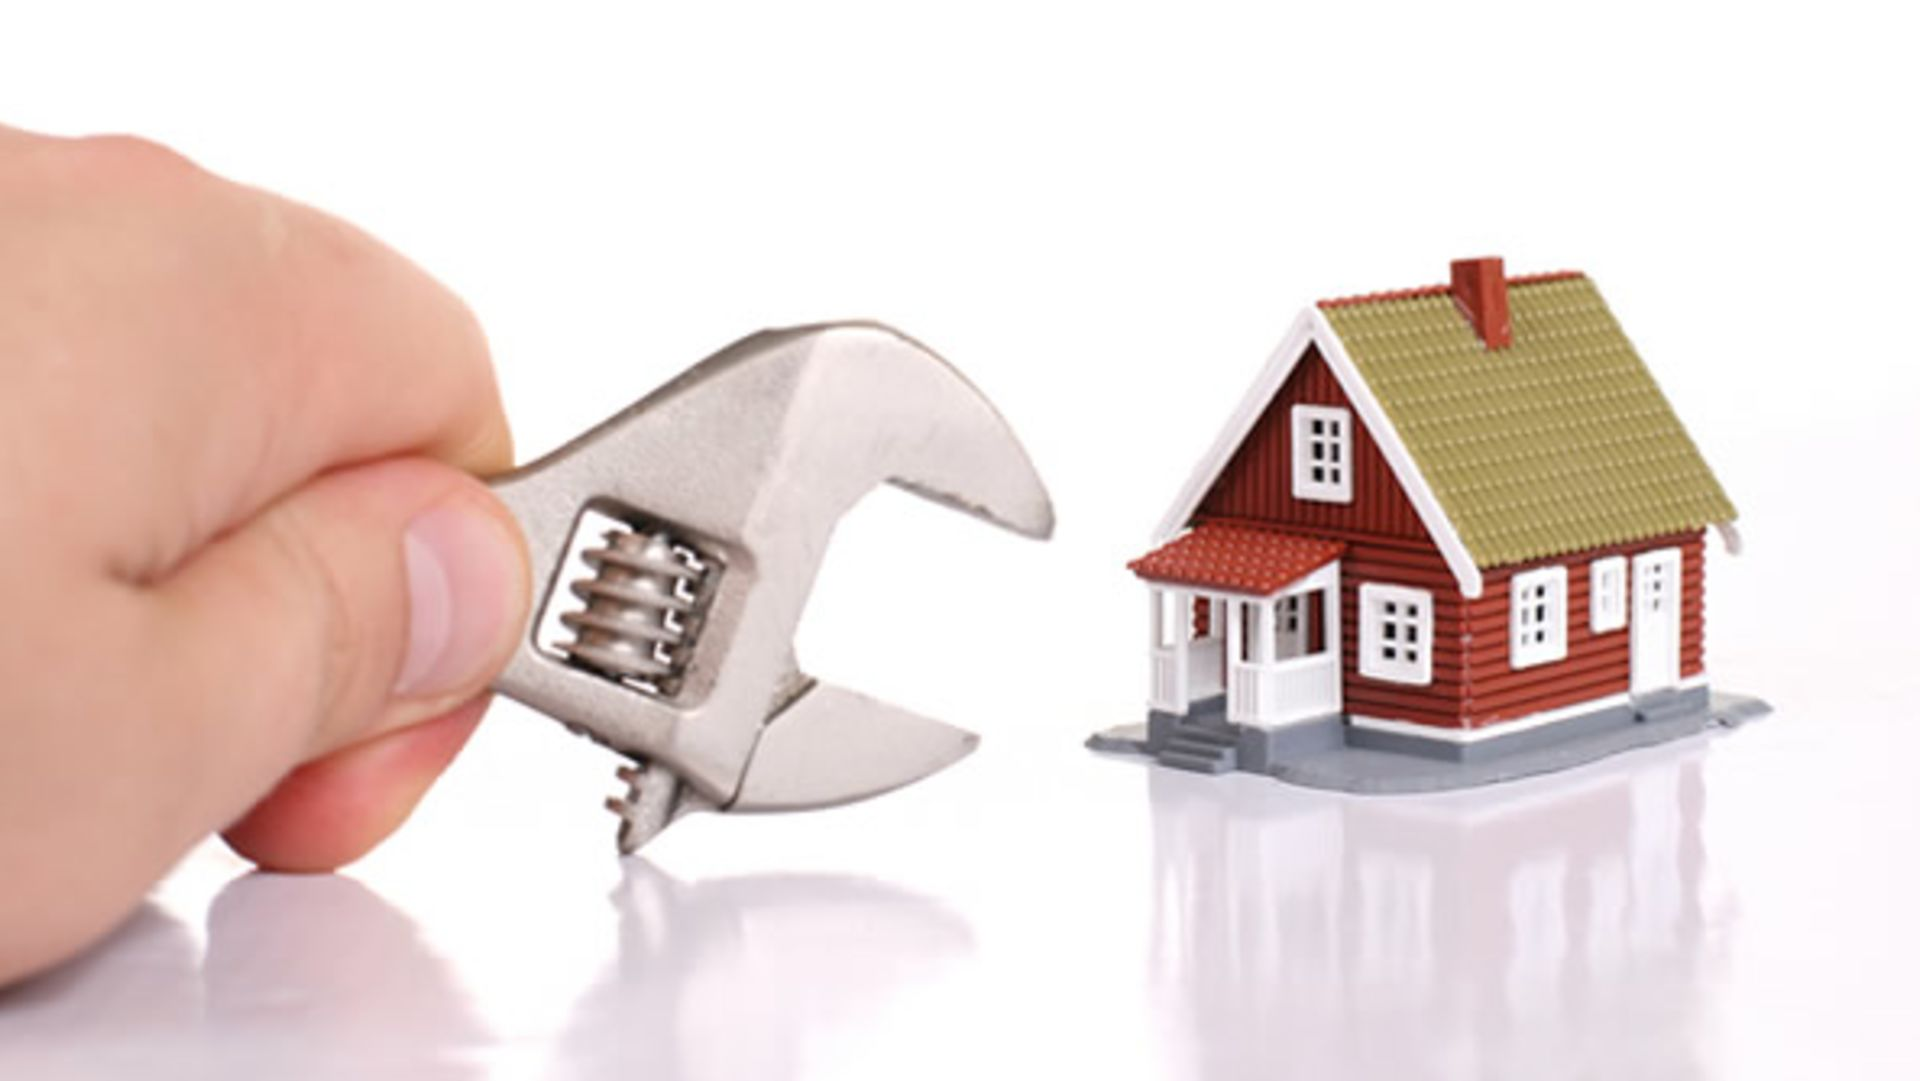 Have You Ever Considered the Secondary Housing Market?